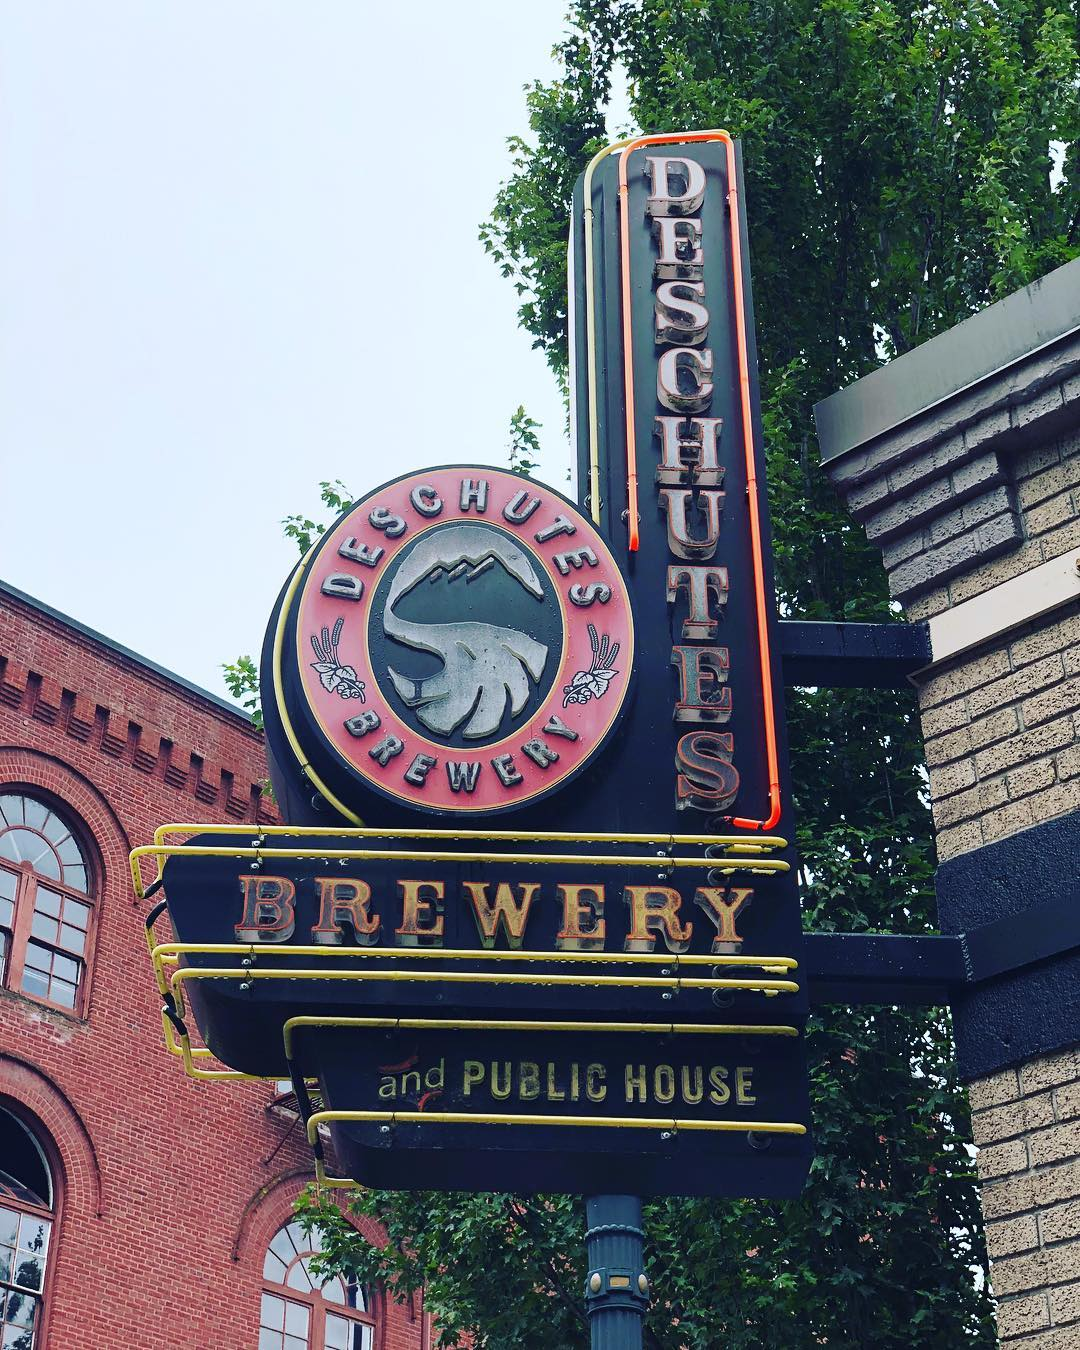 Deschutes Brewery entrance in Portland (@barbfacile / Instagram)